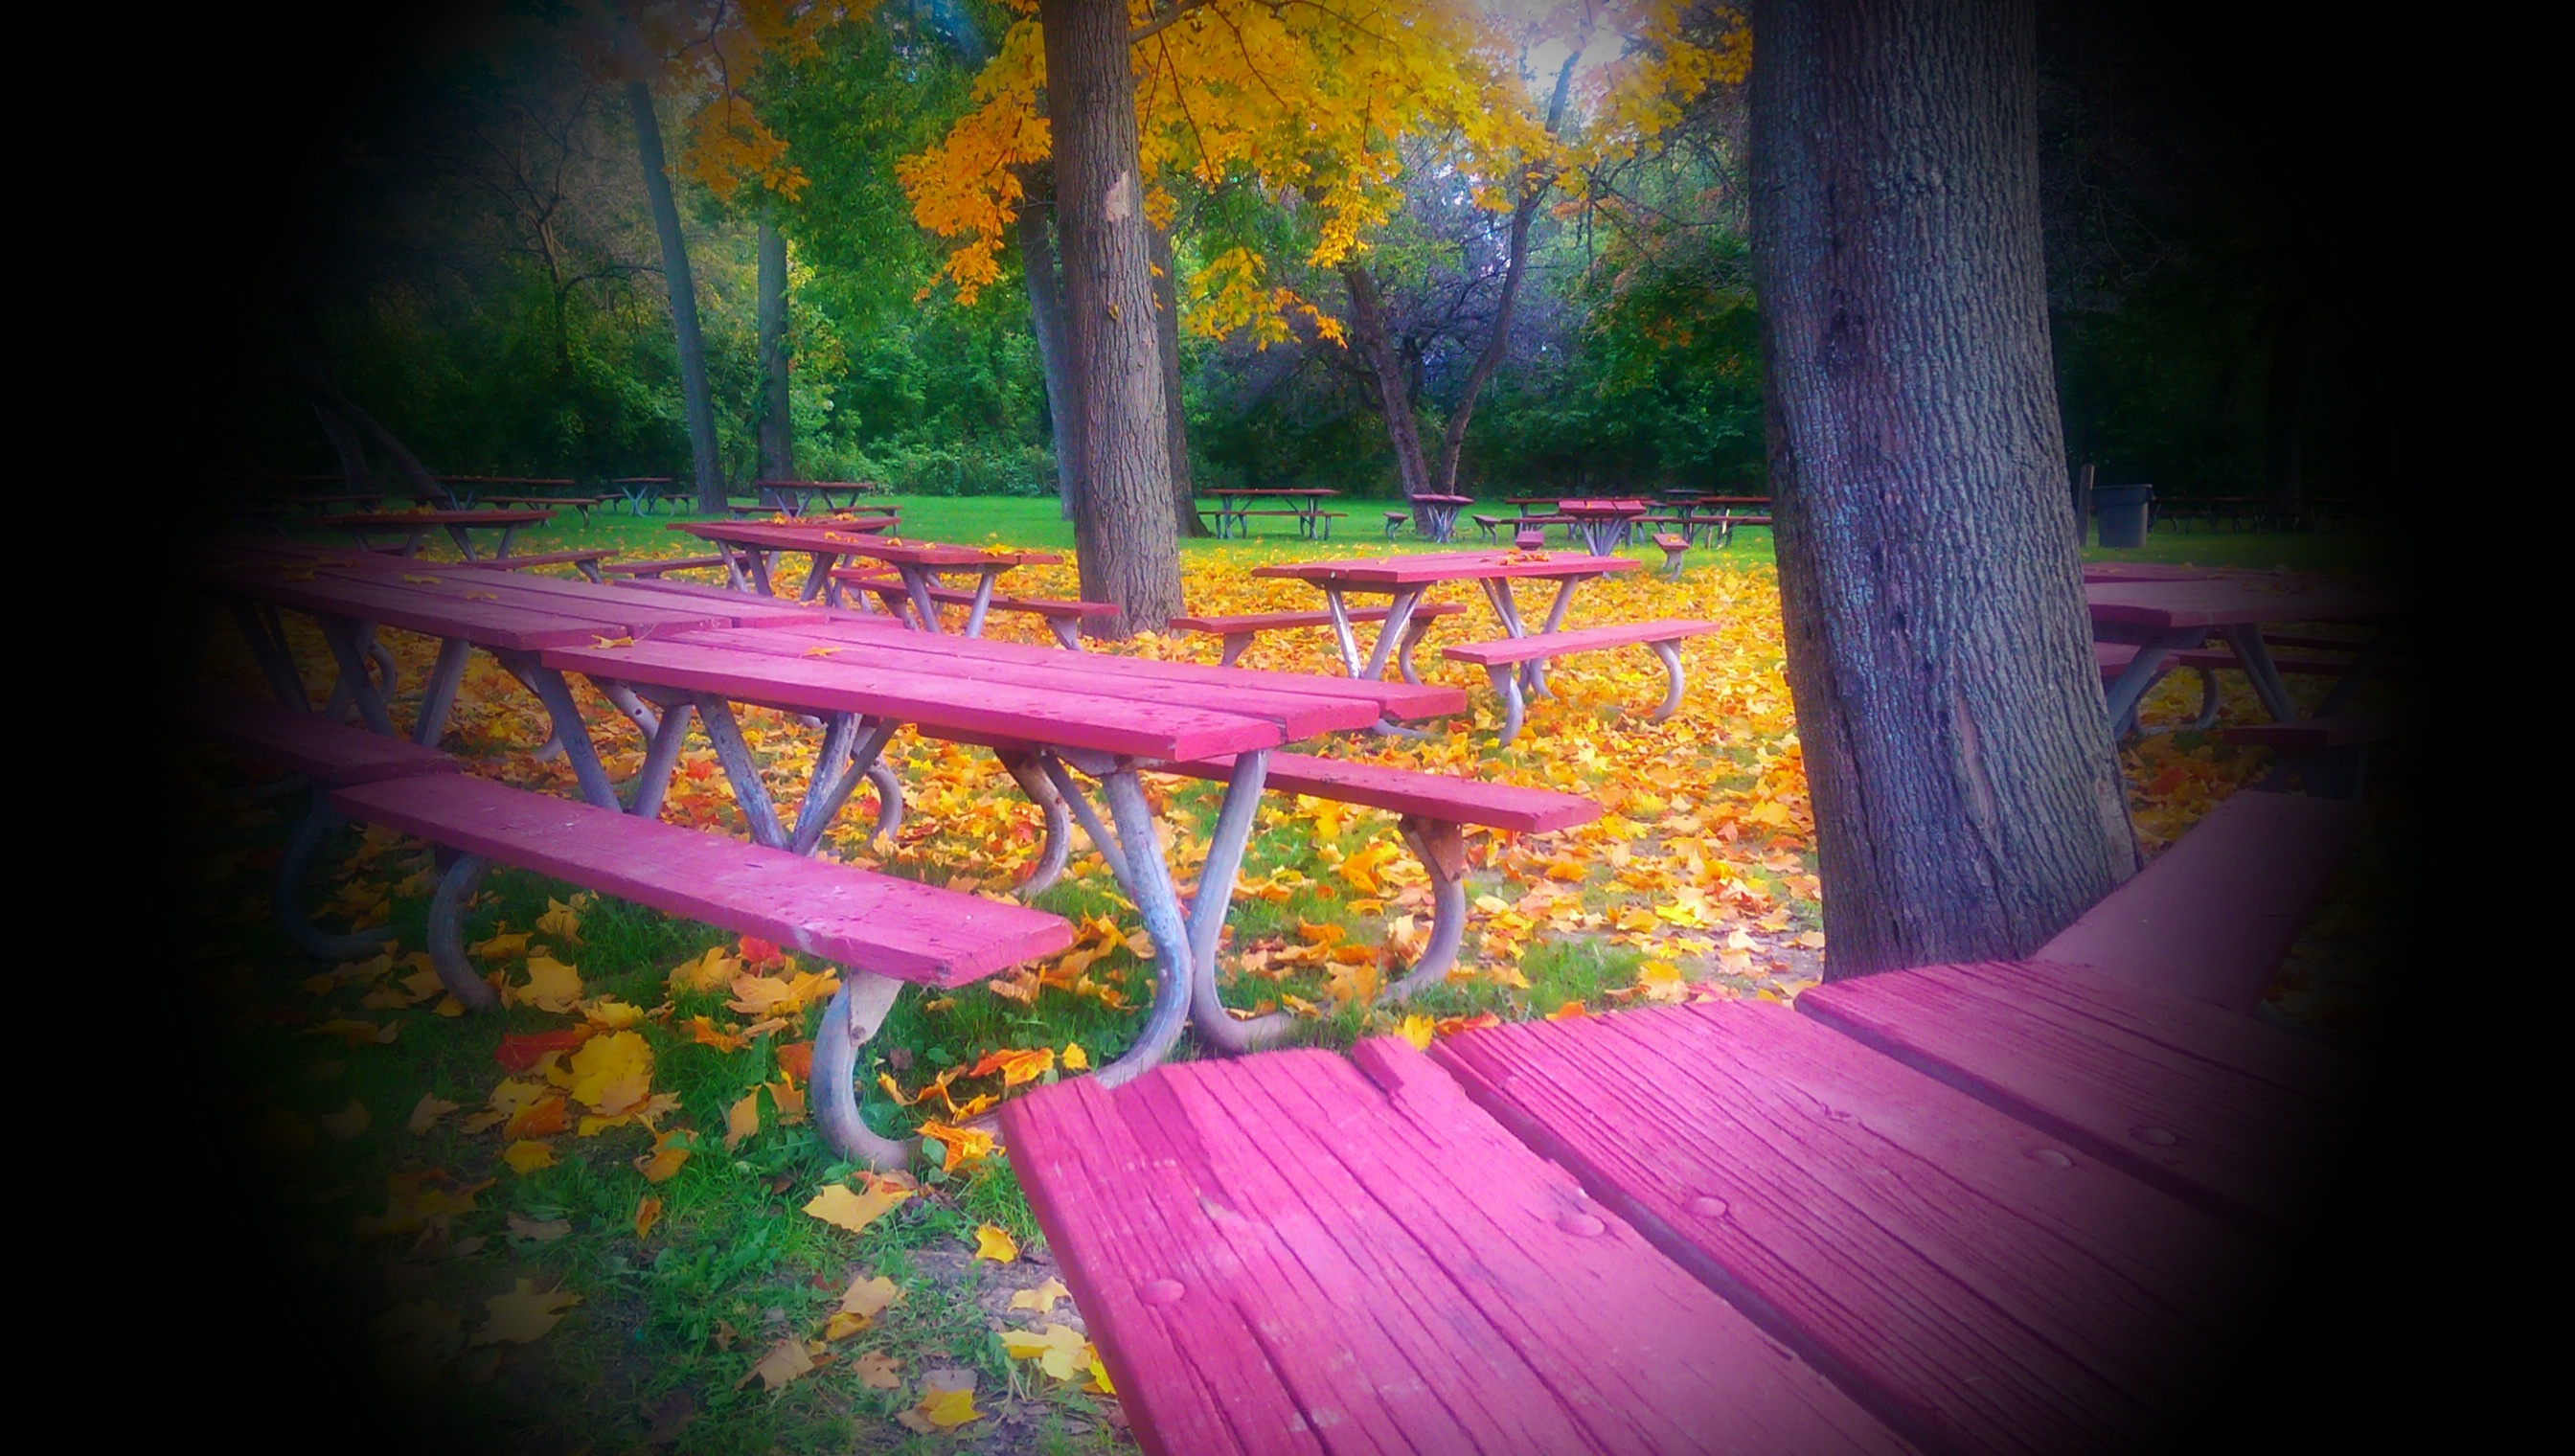 photograph of park benches